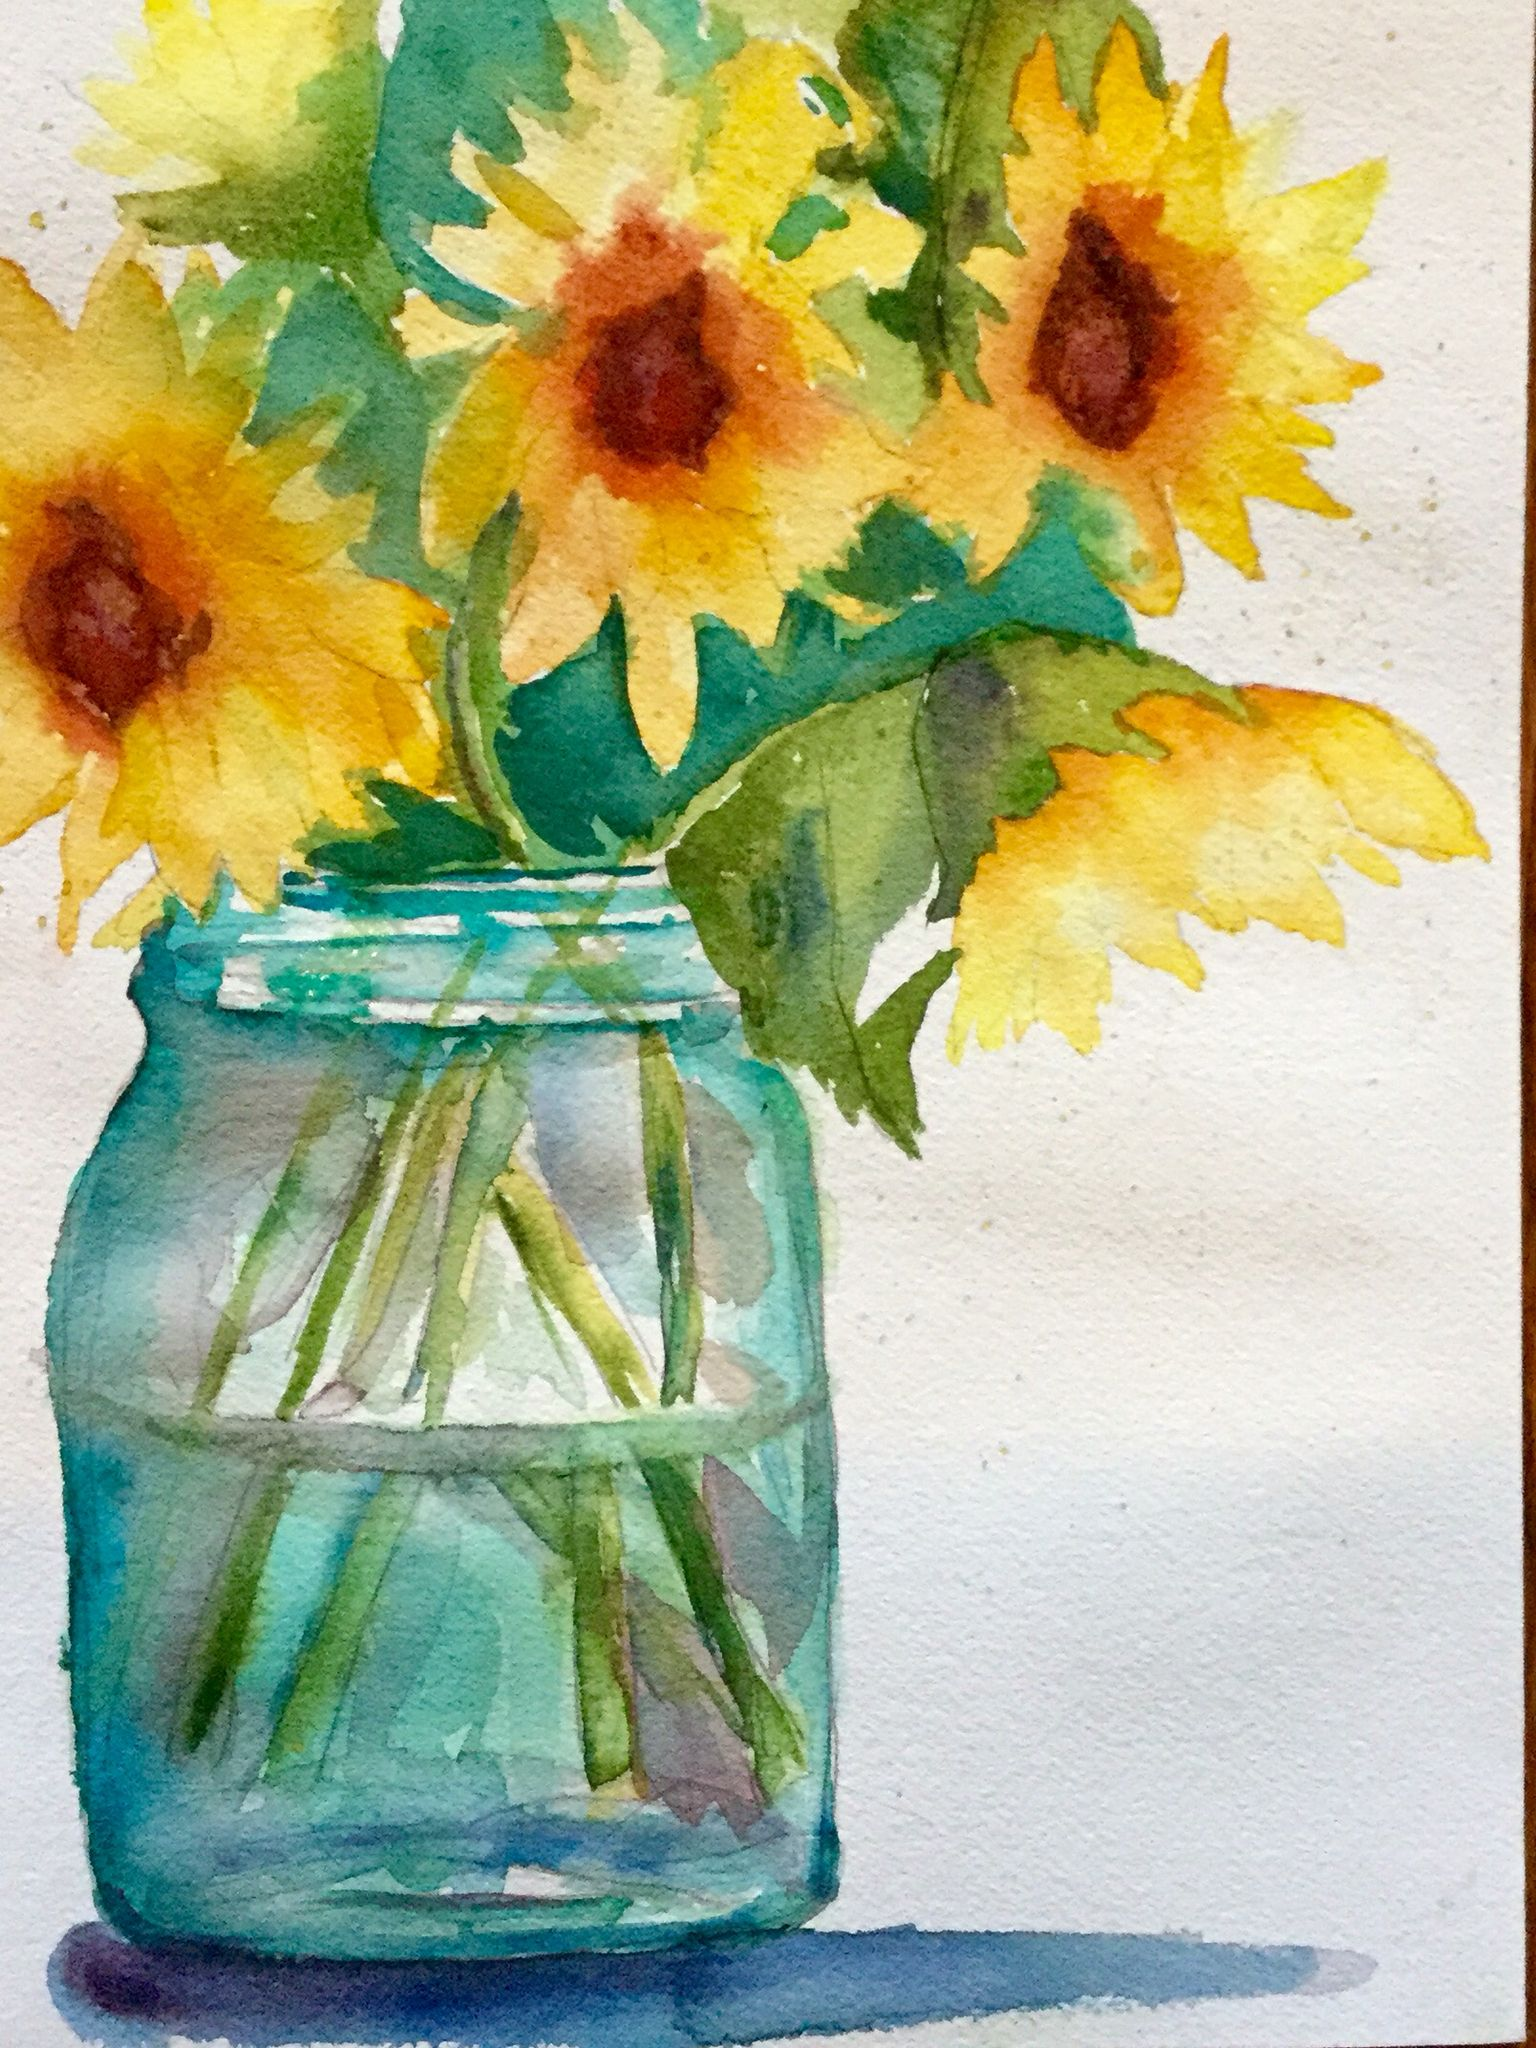 Watercolor artist in texas -  Sunshine In A Jar By Texas Watercolor Artist Karen Scherrer